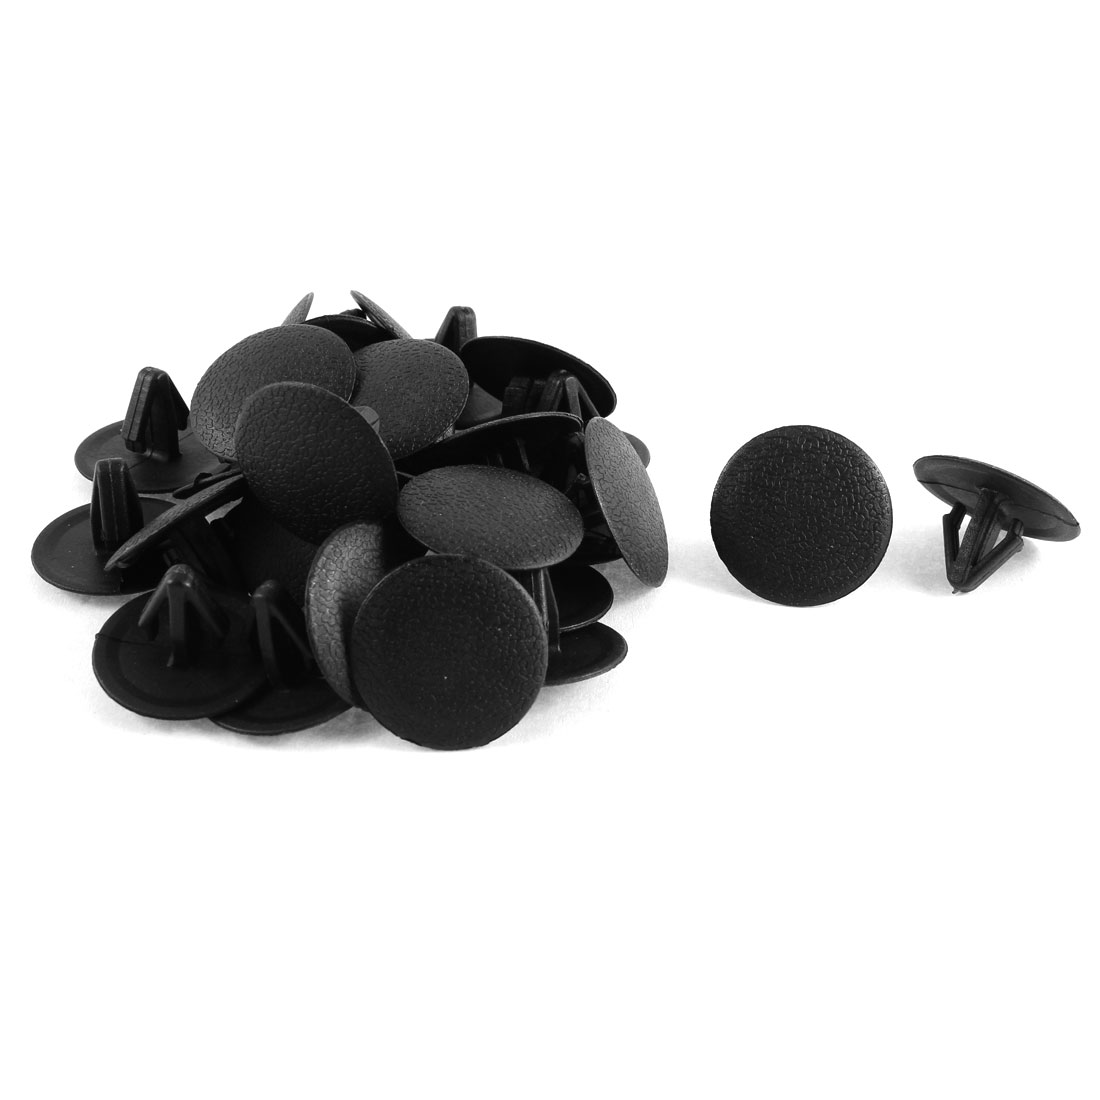 30 Pcs Black Plastic Splash Guard Moulding Bumper Clips 12mm x 14mm x 25mm